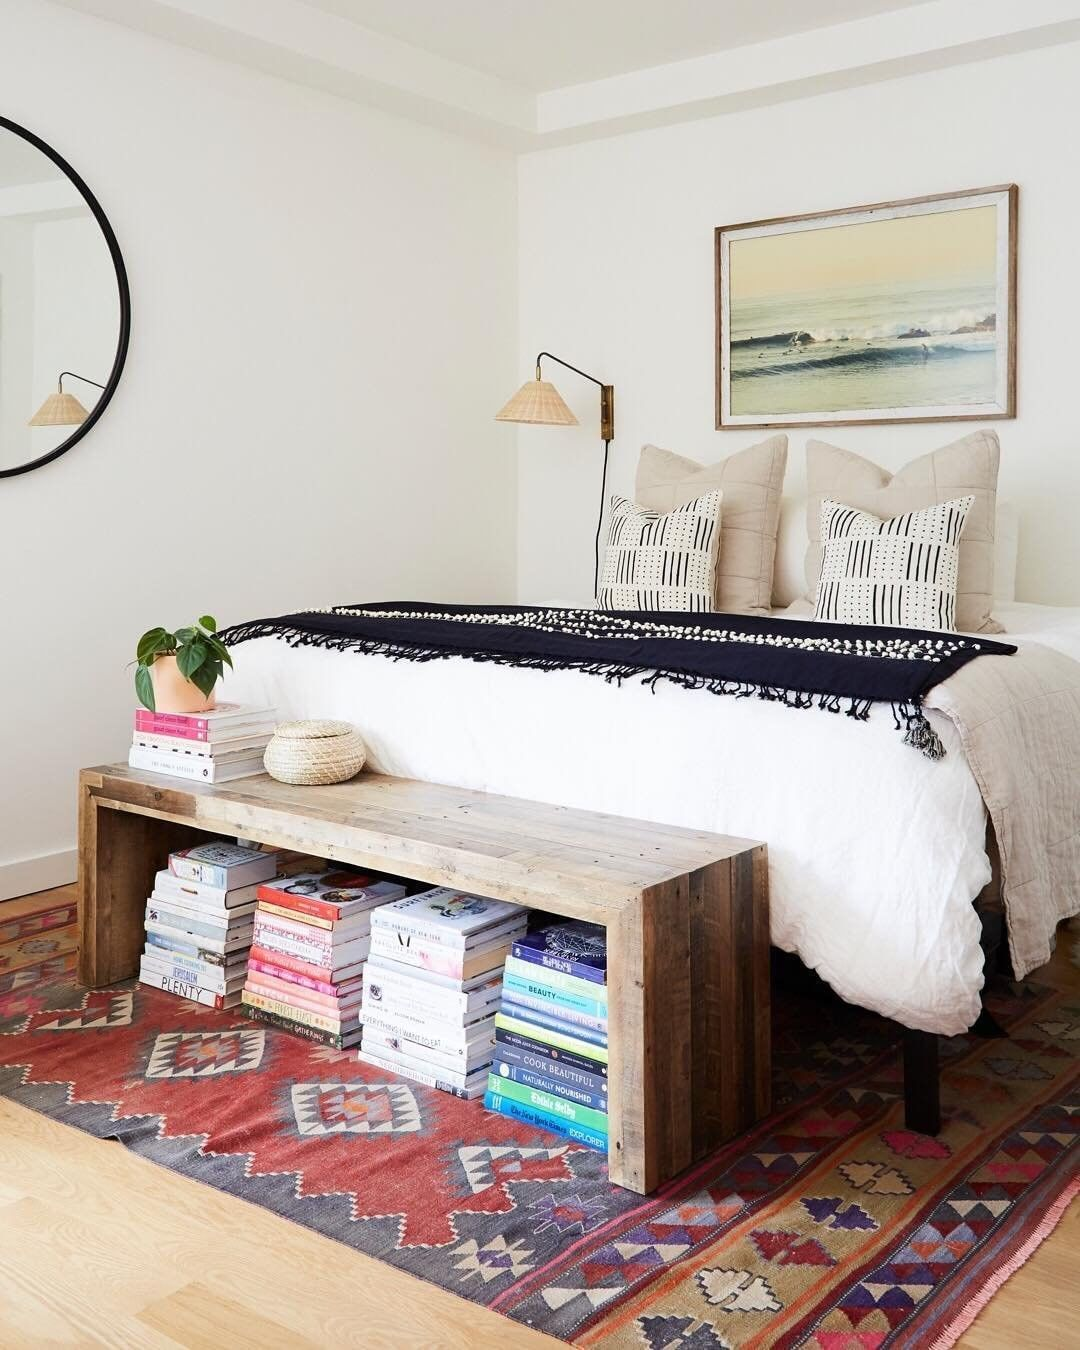 Traditional Bedroom With Bench At Foot Of Bed Creative Book Display Under Bench Oatmeal Quilt And White Linen Duvet Ig Cl Home Decor Eclectic Bedroom Home